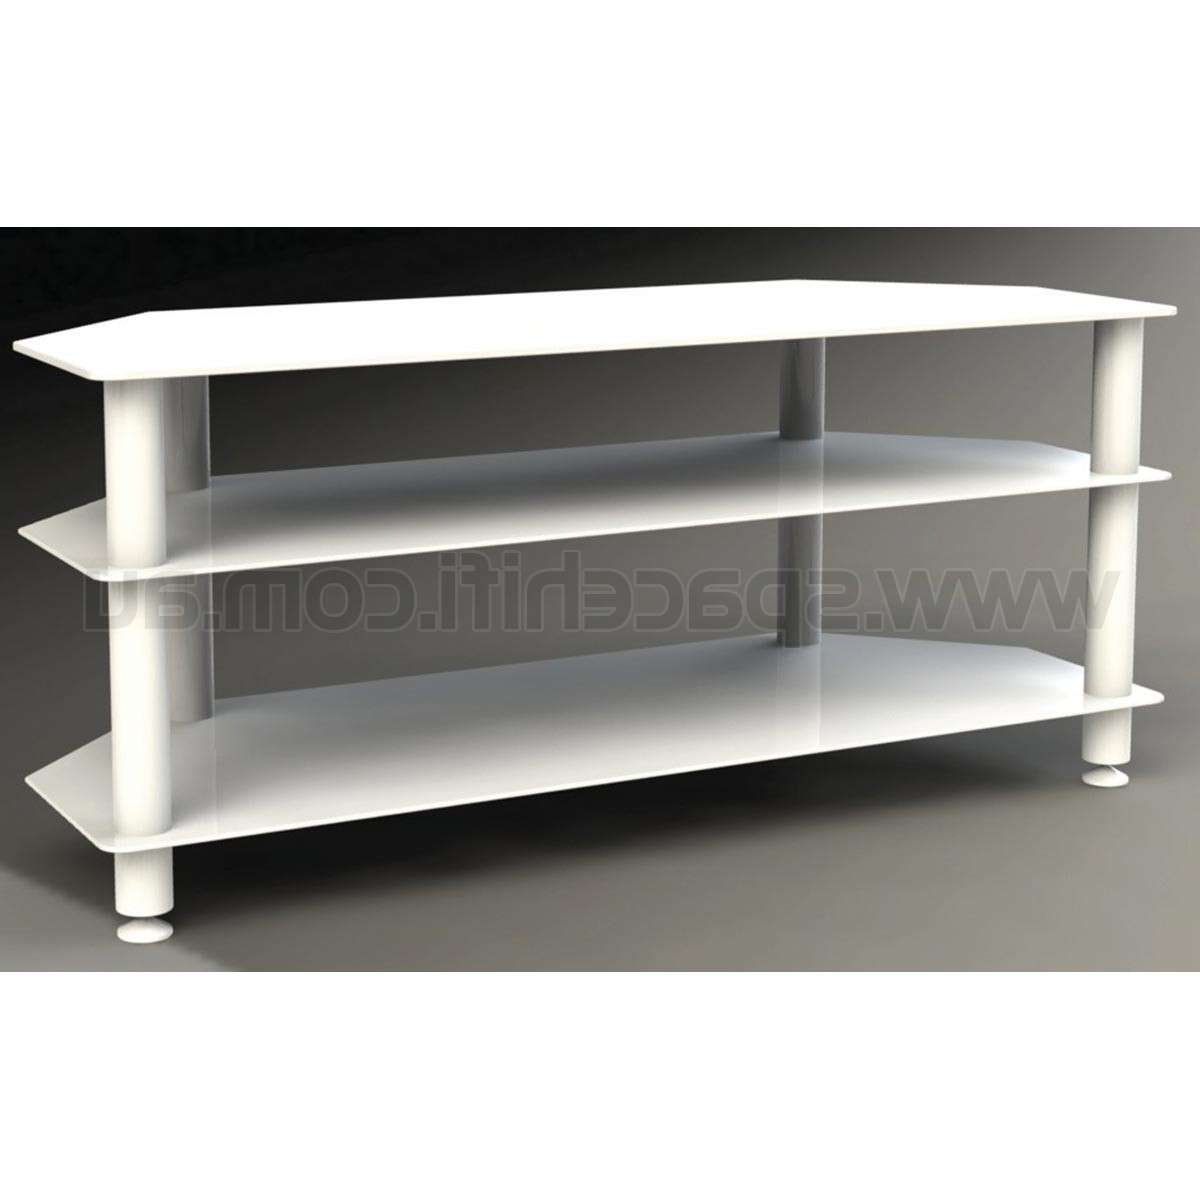 Tauris Ace 1200mm 3 Shelf White Glass Tv Unit Stand | Space Hi Fi With Regard To Glass Tv Cabinets (View 19 of 20)